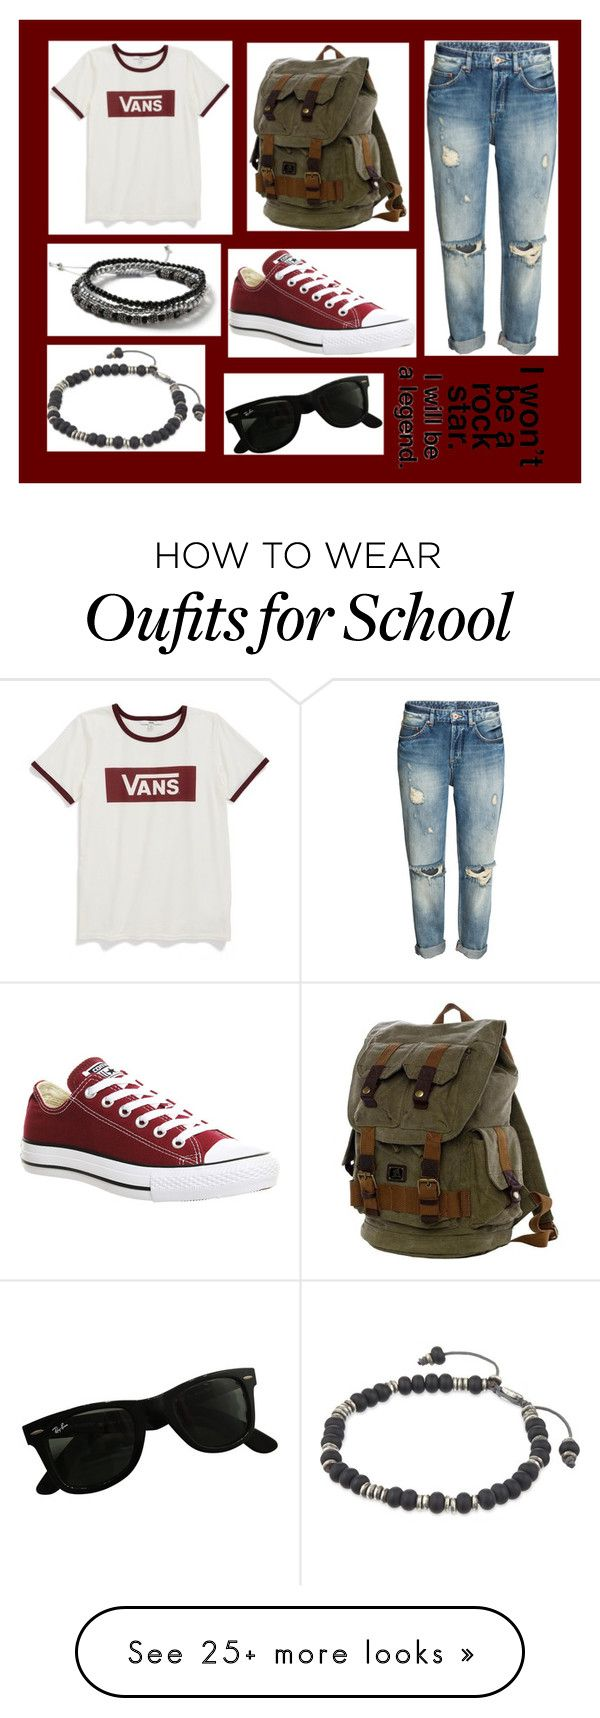 """""""09-23-16"""" by clear-skye on Polyvore featuring Vans, Converse, Ray-Ban, Topman and M. Cohen"""